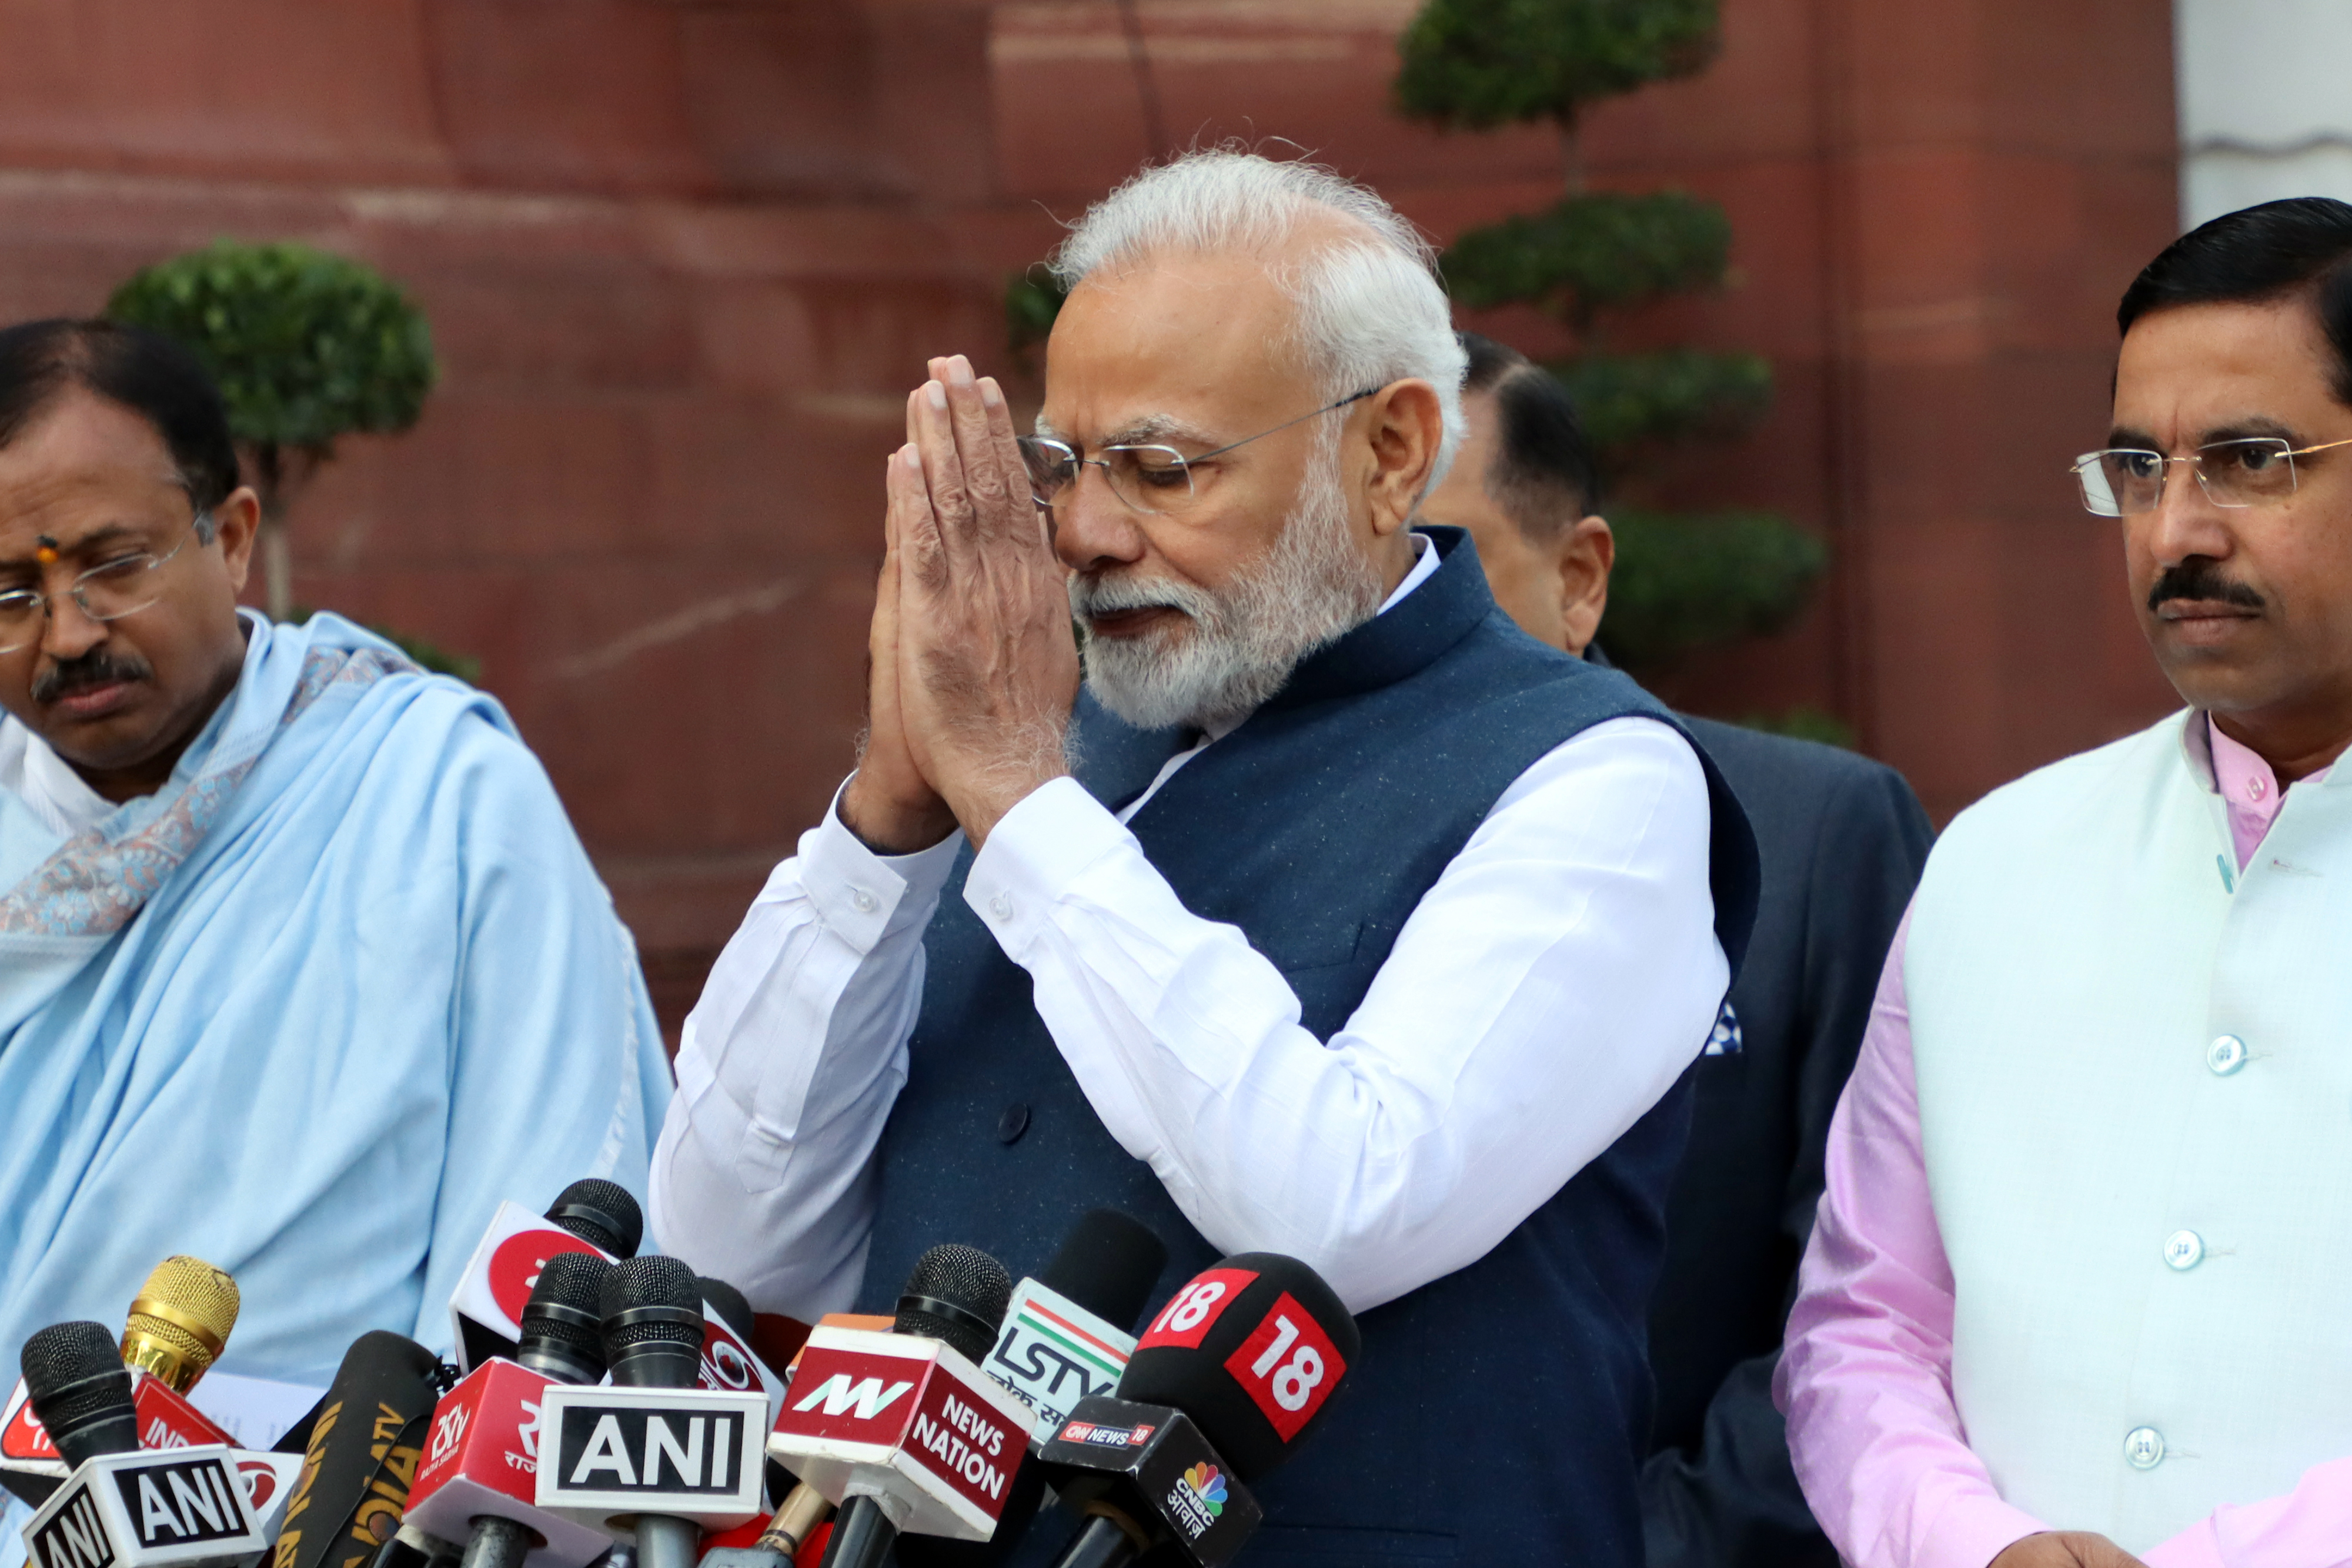 Indian Prime Minister Narendra Modi says he is thinking about ...